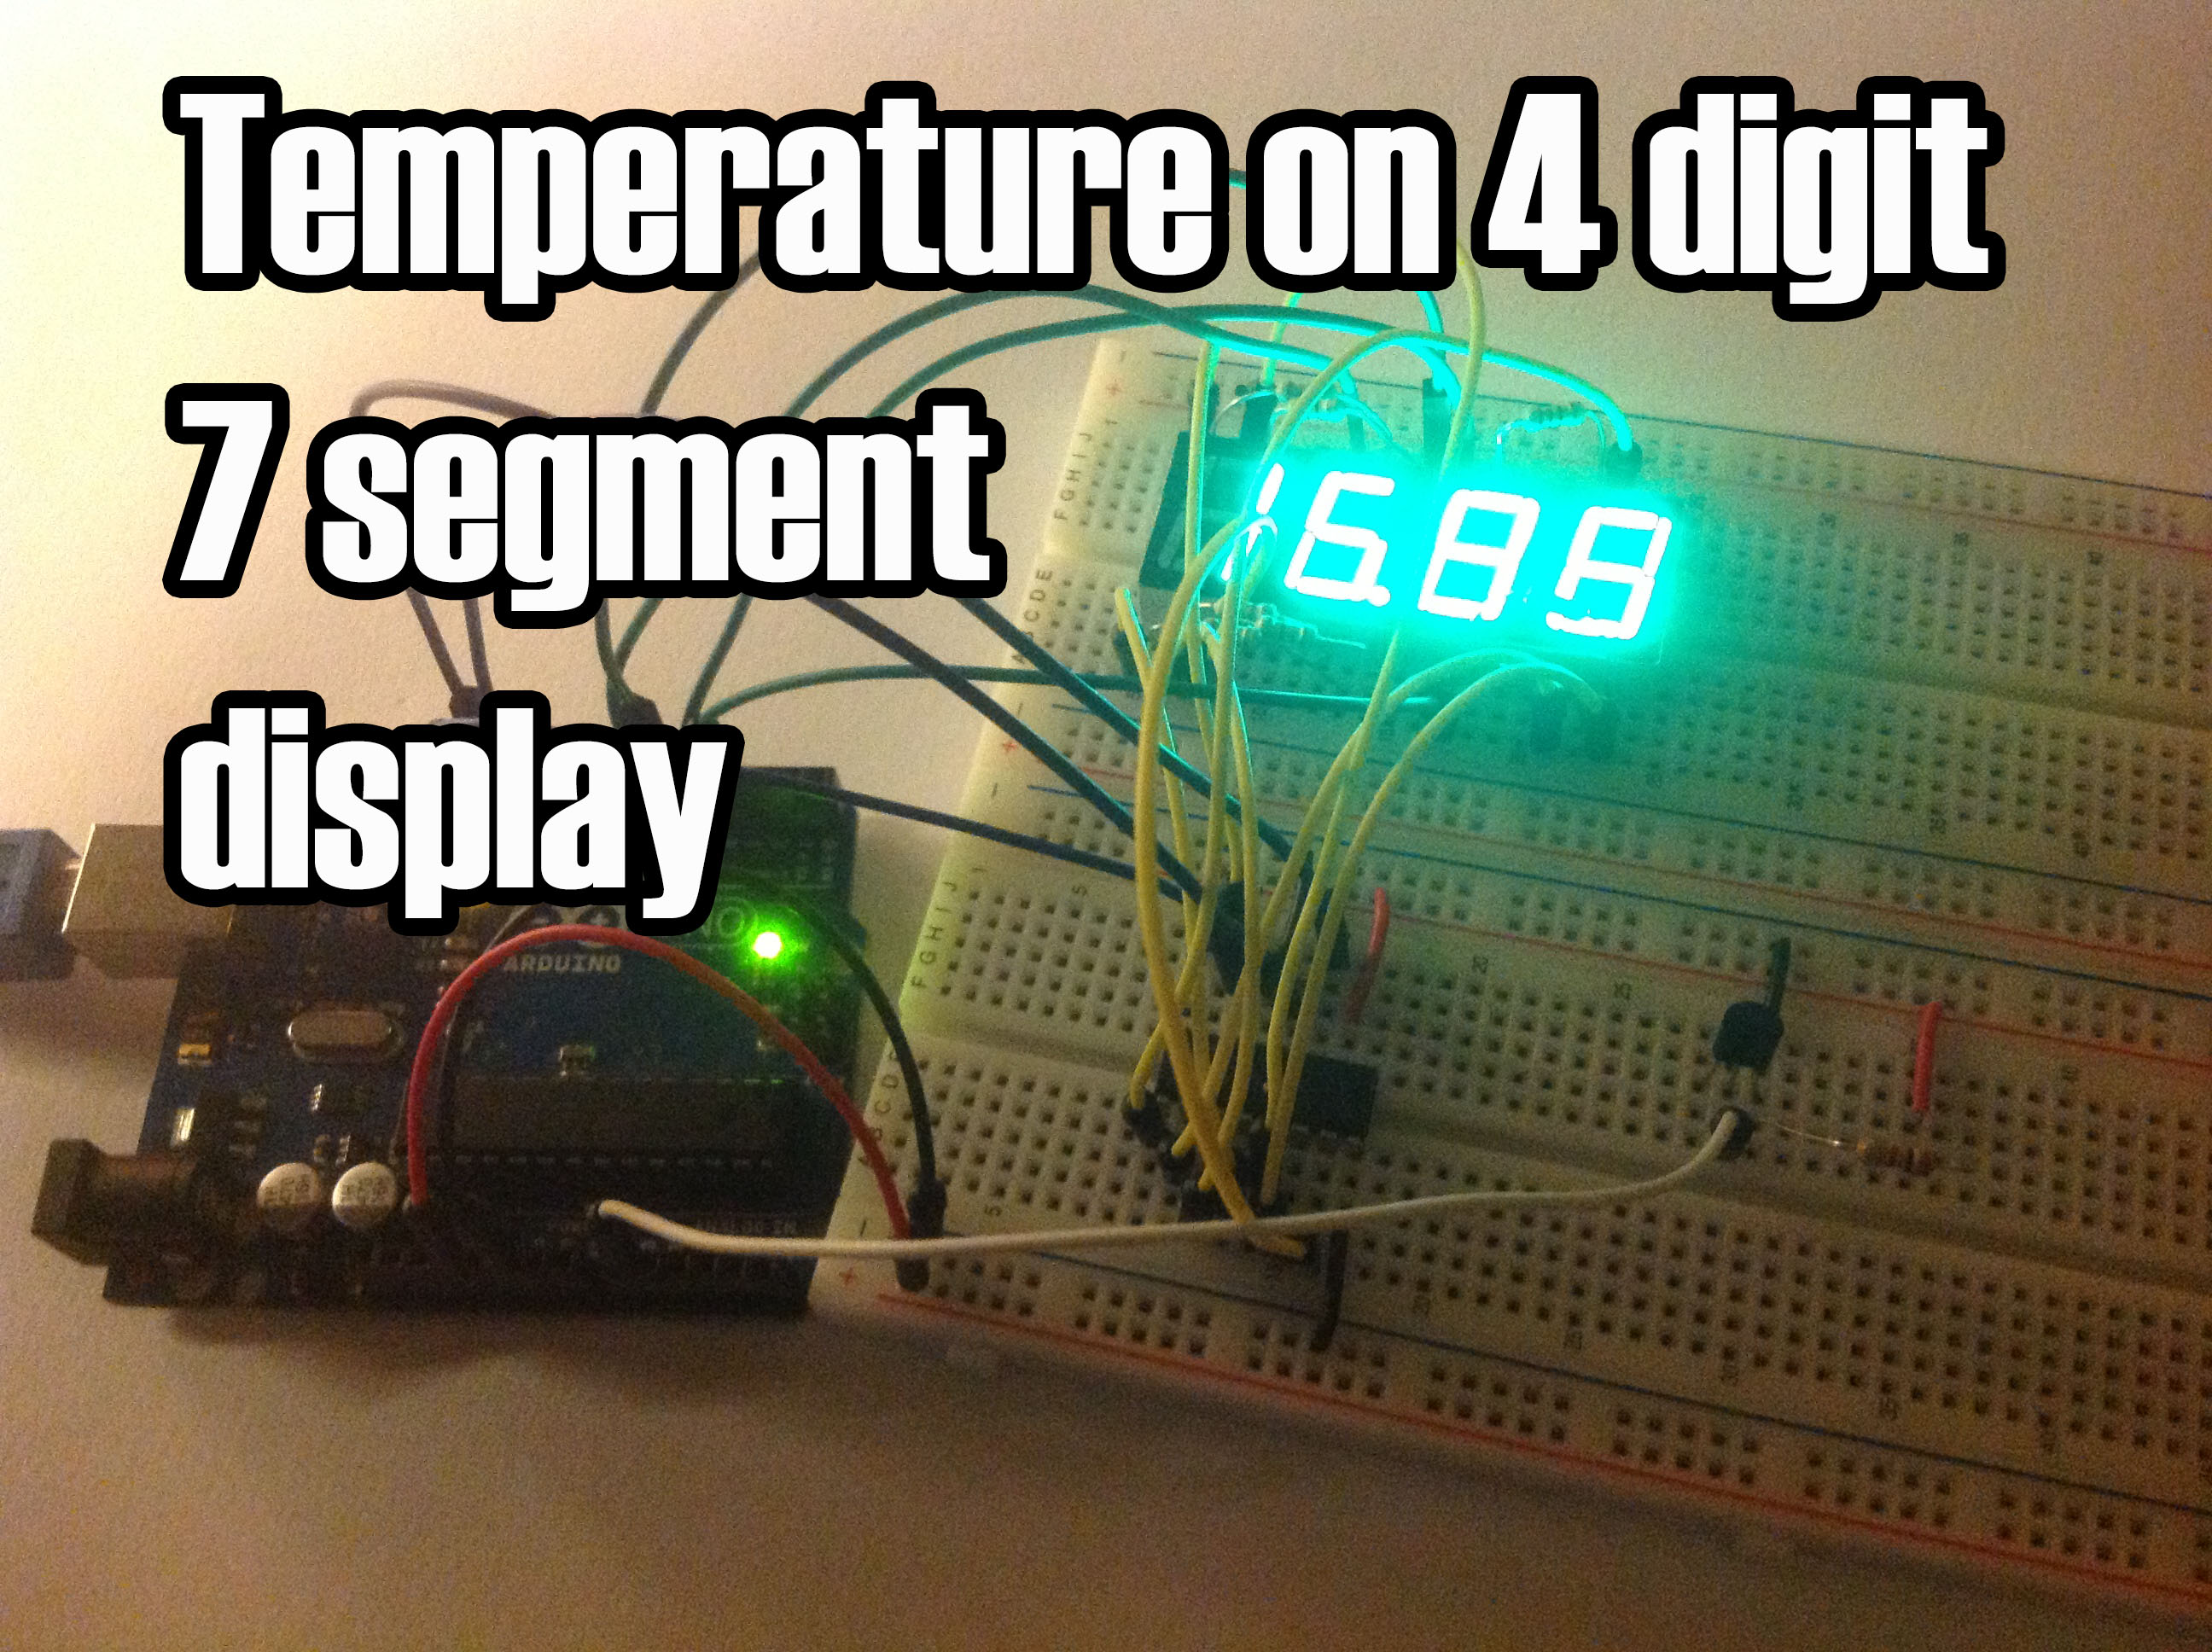 Arduino Temperature On 4 Digit 7 Segment Display Random Nerd Detector Controller Circuit Electronic Projects The Sensor Is Cheapest You Can Find So Actually Changes Pretty Easily Which Makes To Show Always Different Temperatures